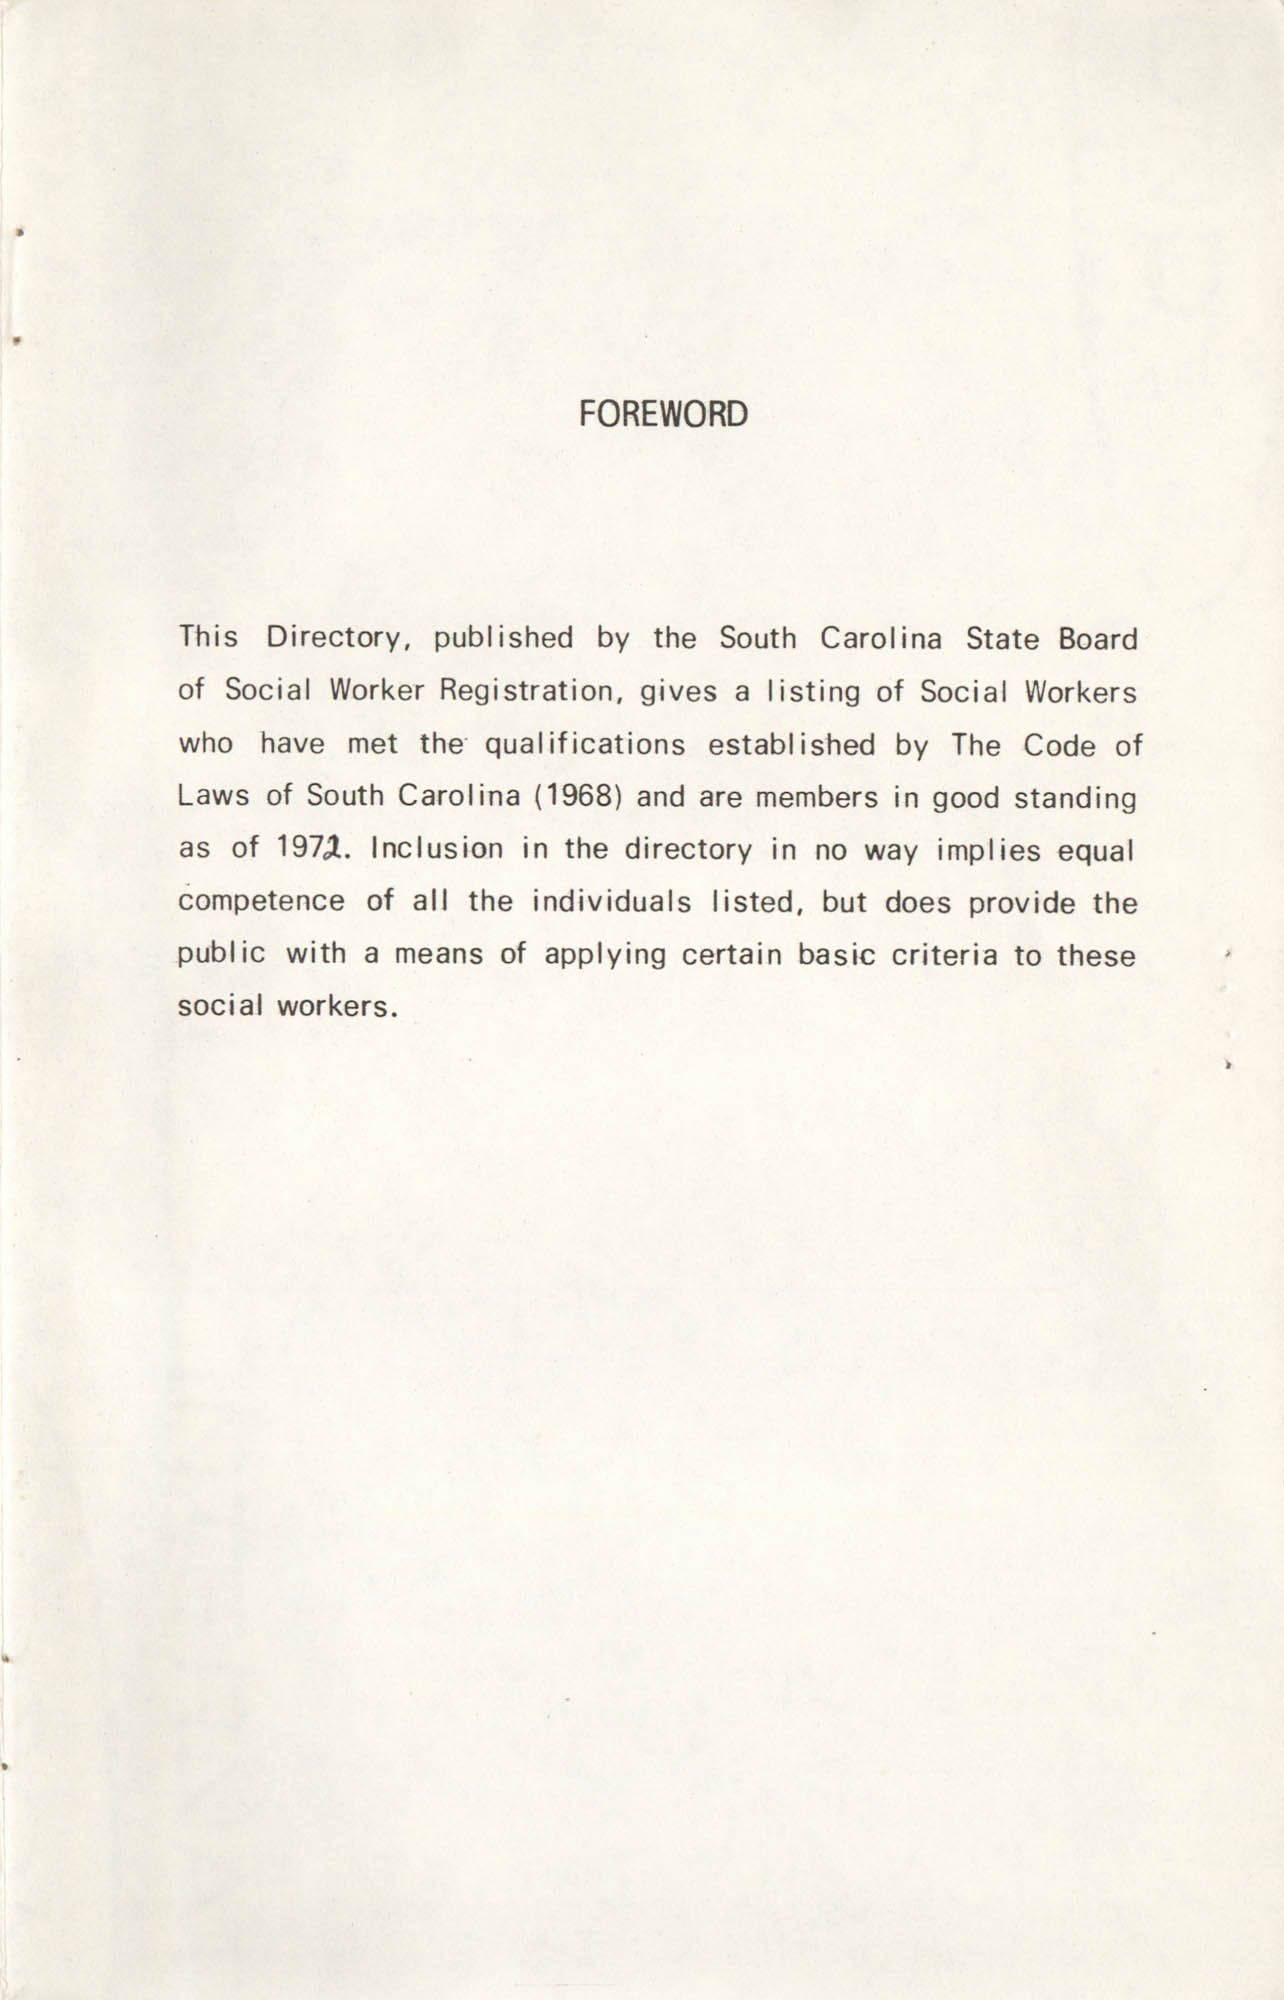 State of South Carolina Directory of Registered Social Workers, 1972, Forward